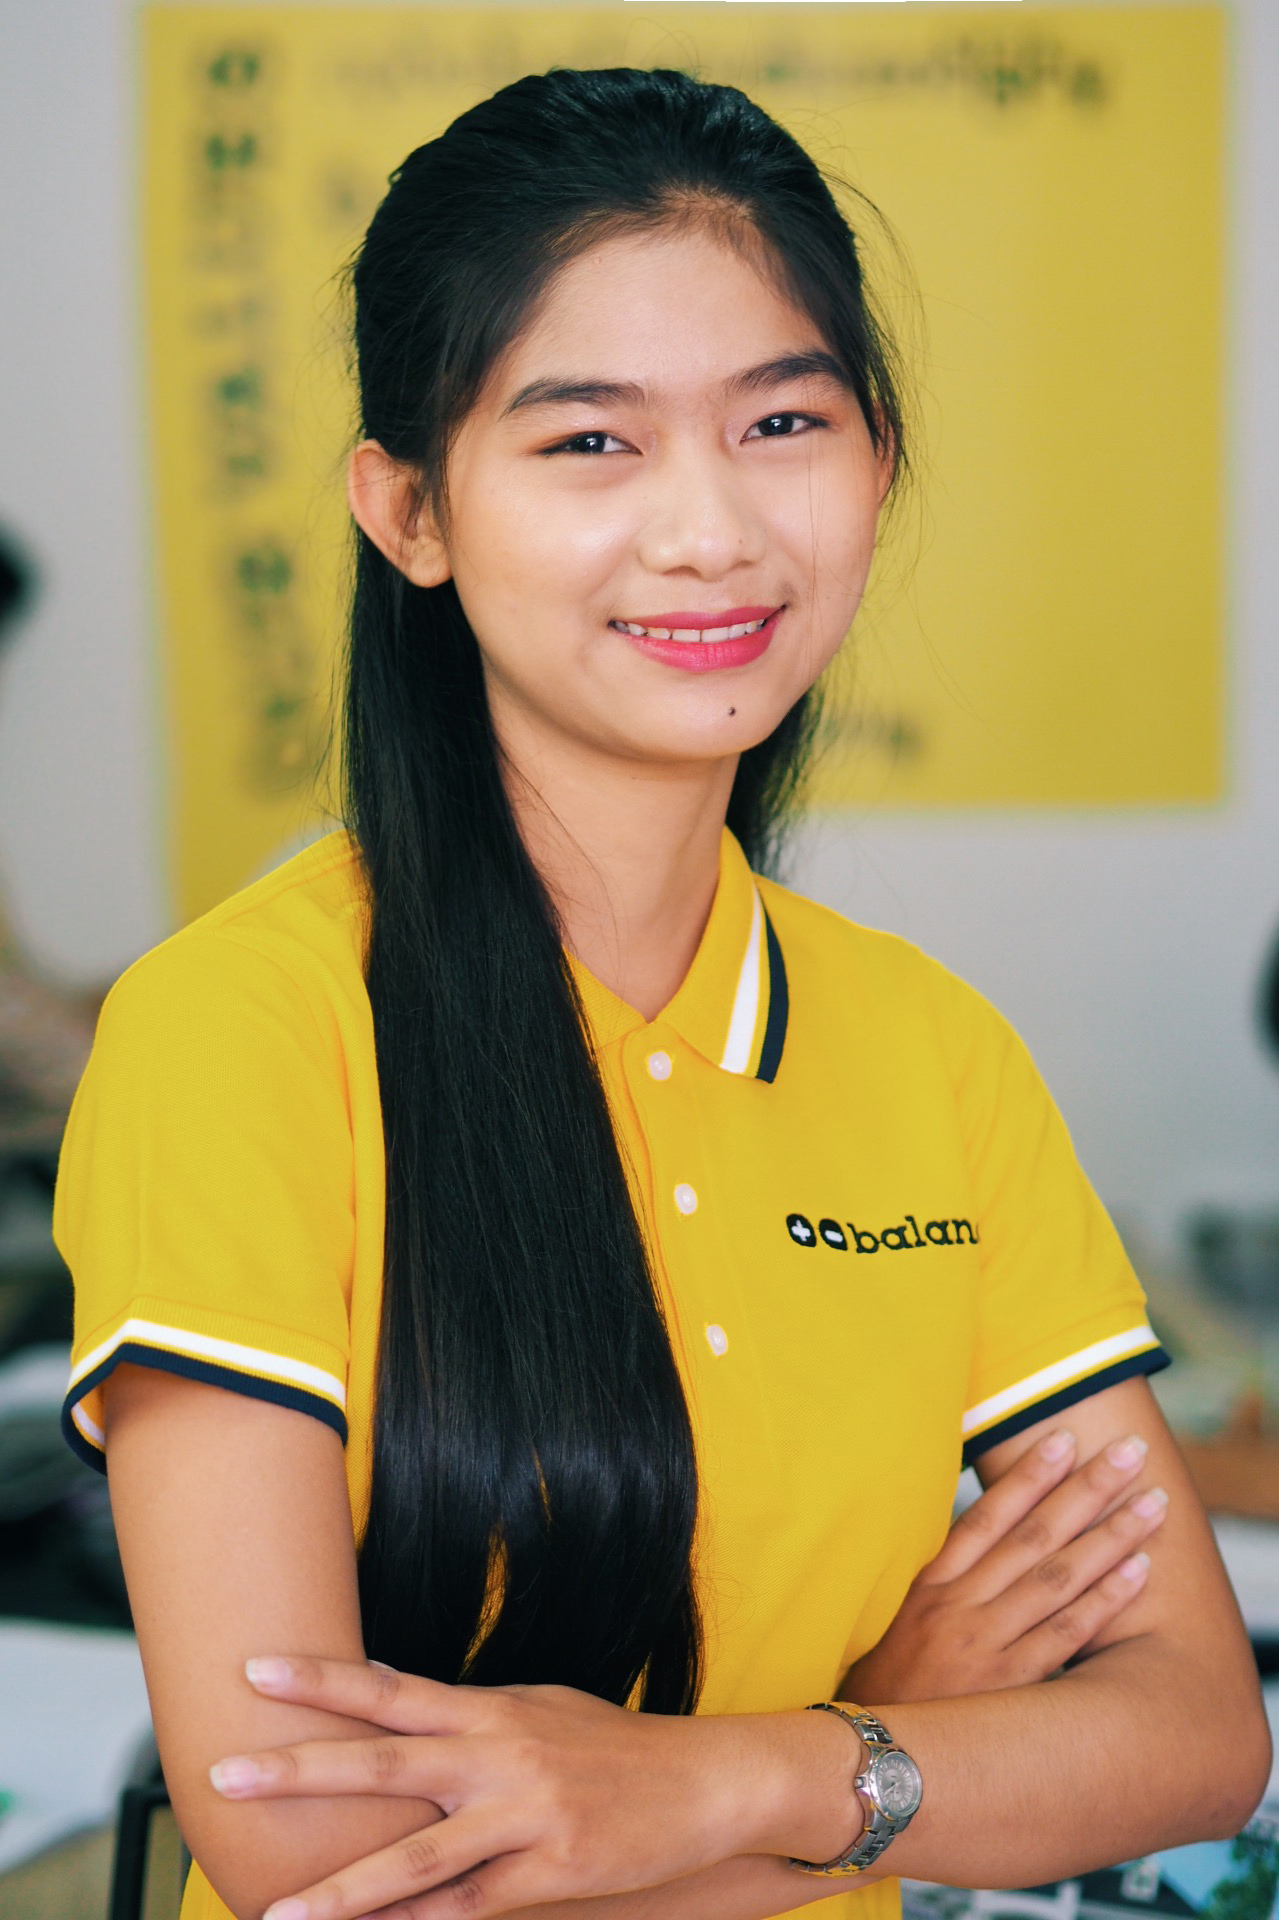 Htet Htet Phyo - Junior Accounting Expert